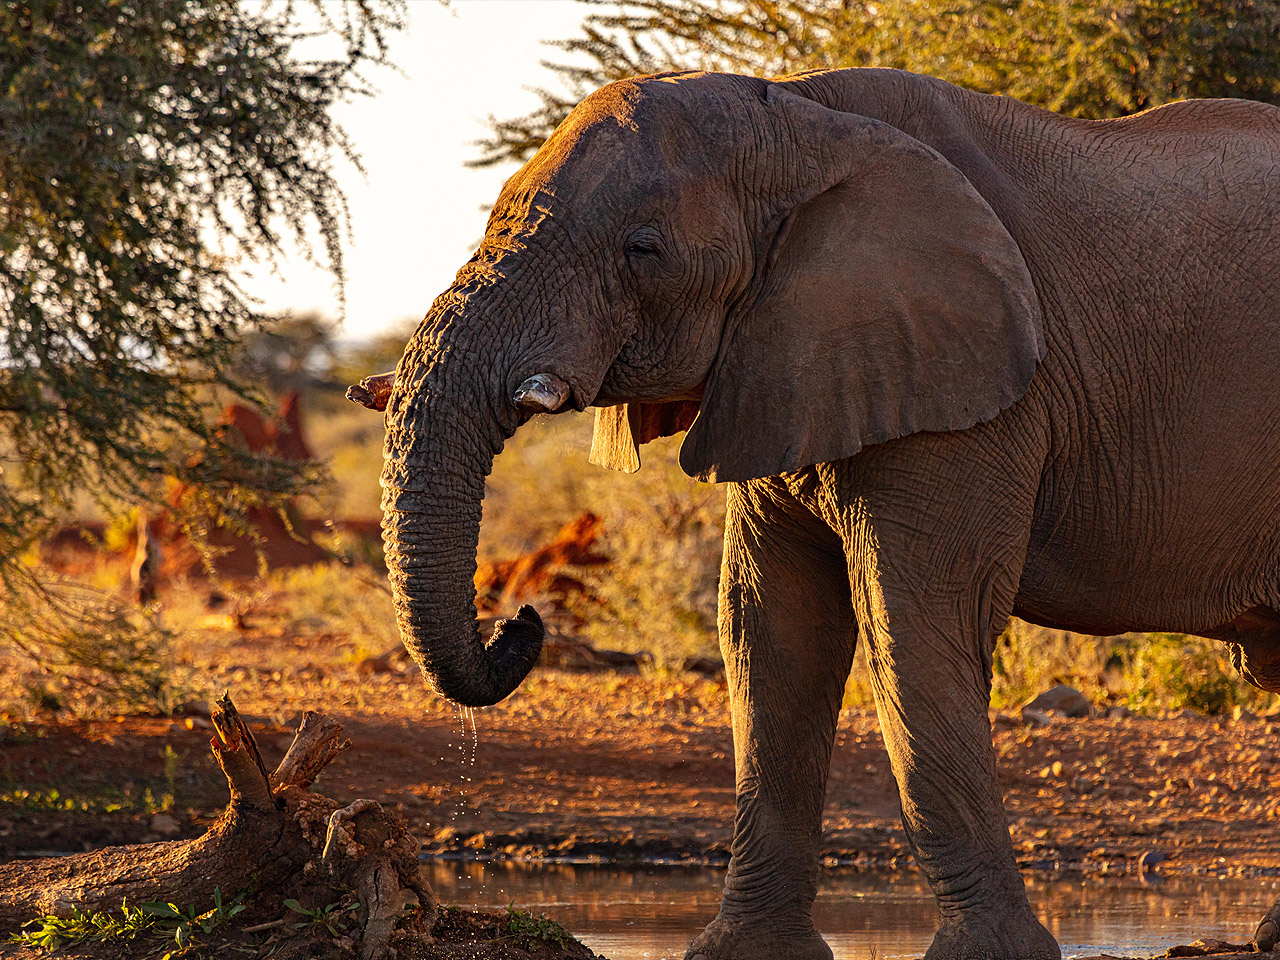 An elephant drinking water in front of two acacia trees.